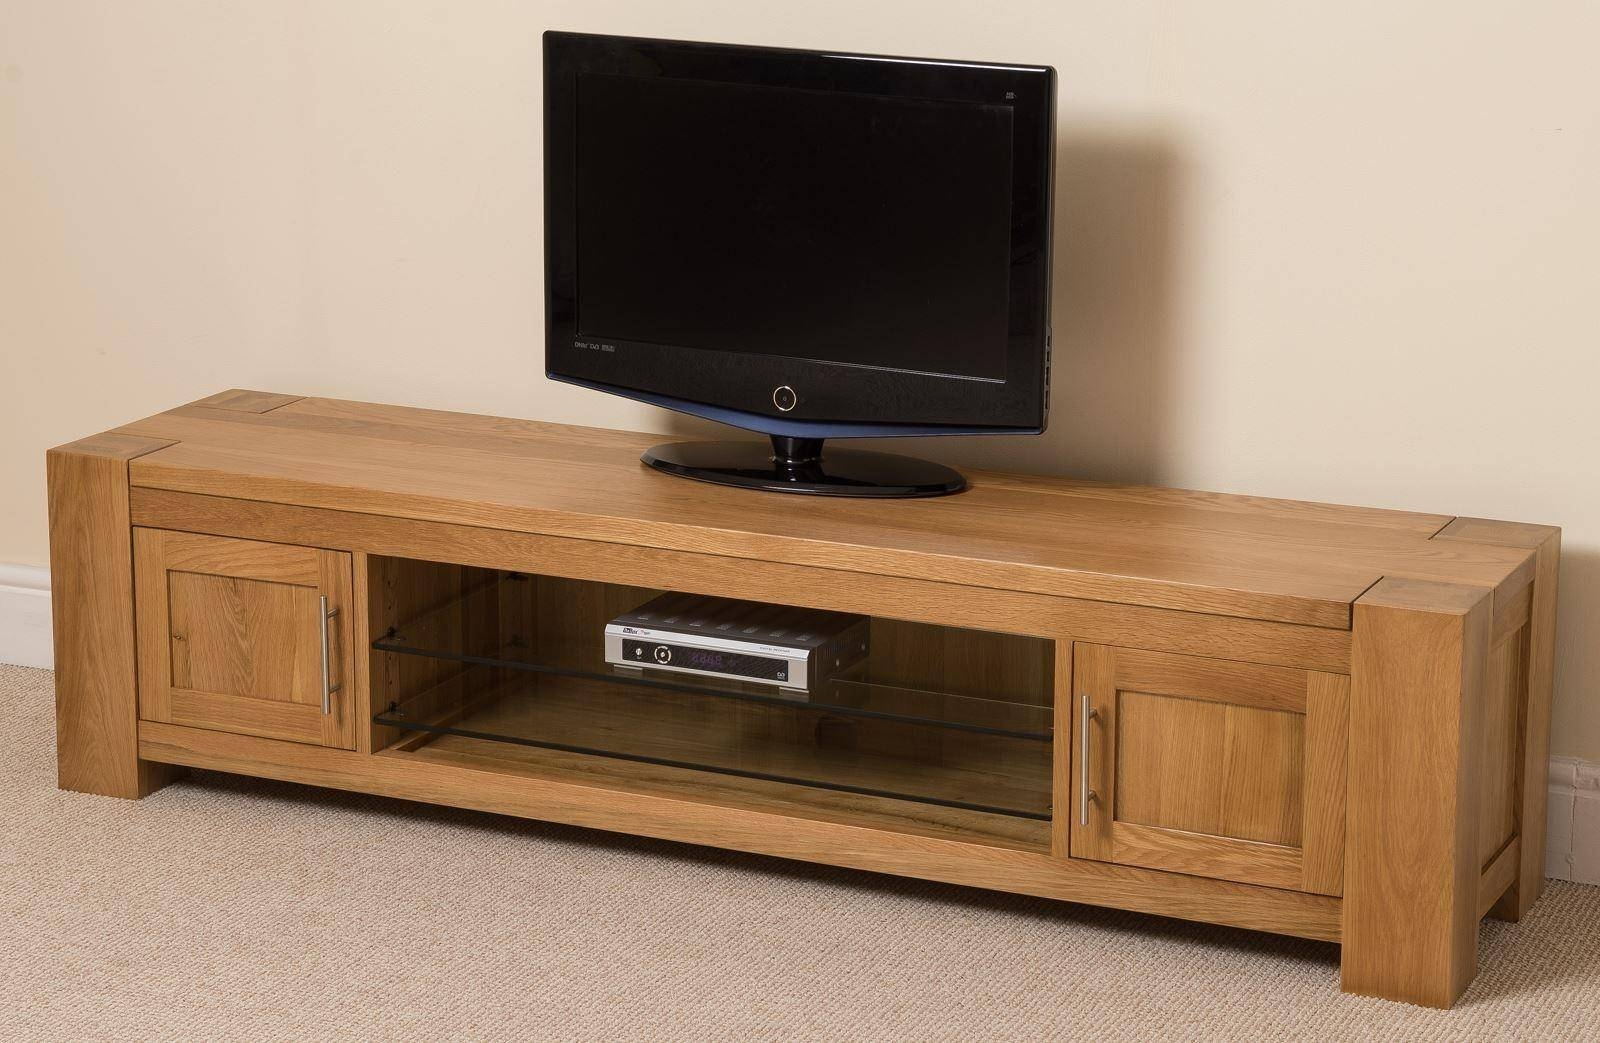 Kuba Solid Widescreen Tv Cabinet | Modern Furnitur Direct with Widescreen Tv Cabinets (Image 6 of 15)